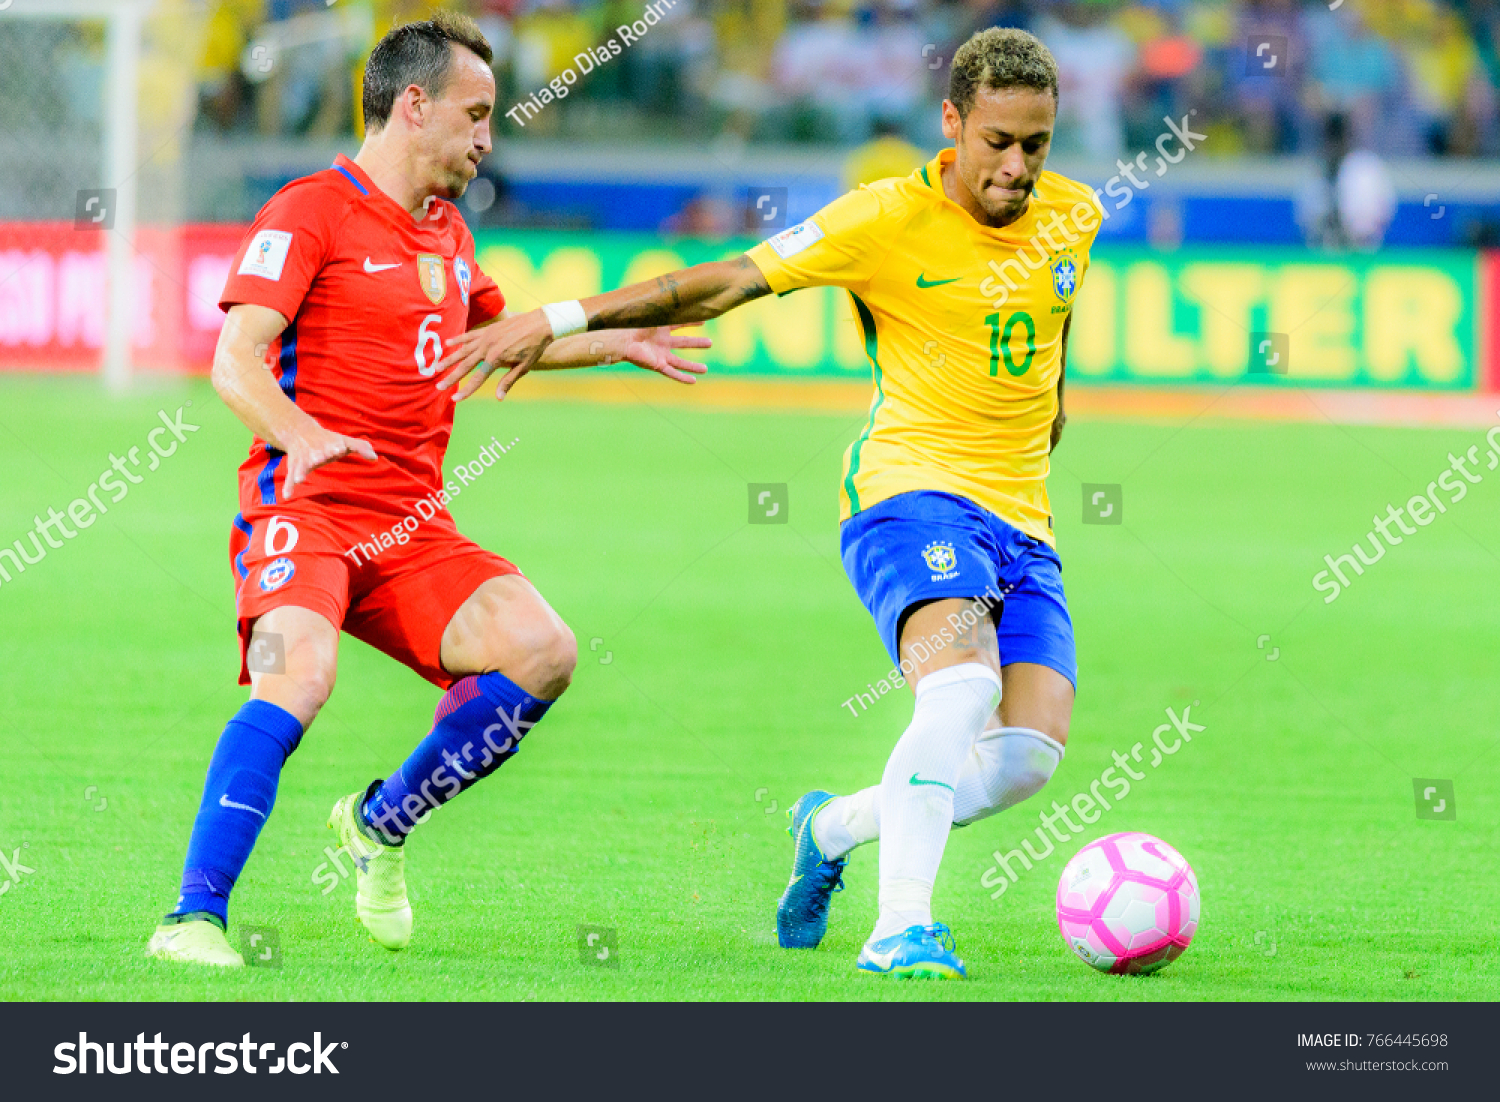 Download Chile World Cup 2018 - stock-photo-the-match-between-brazil-and-chile-for-the-fifa-world-cup-russia-qualifier-at-allianz-parque-766445698  Pictures_555436 .jpg